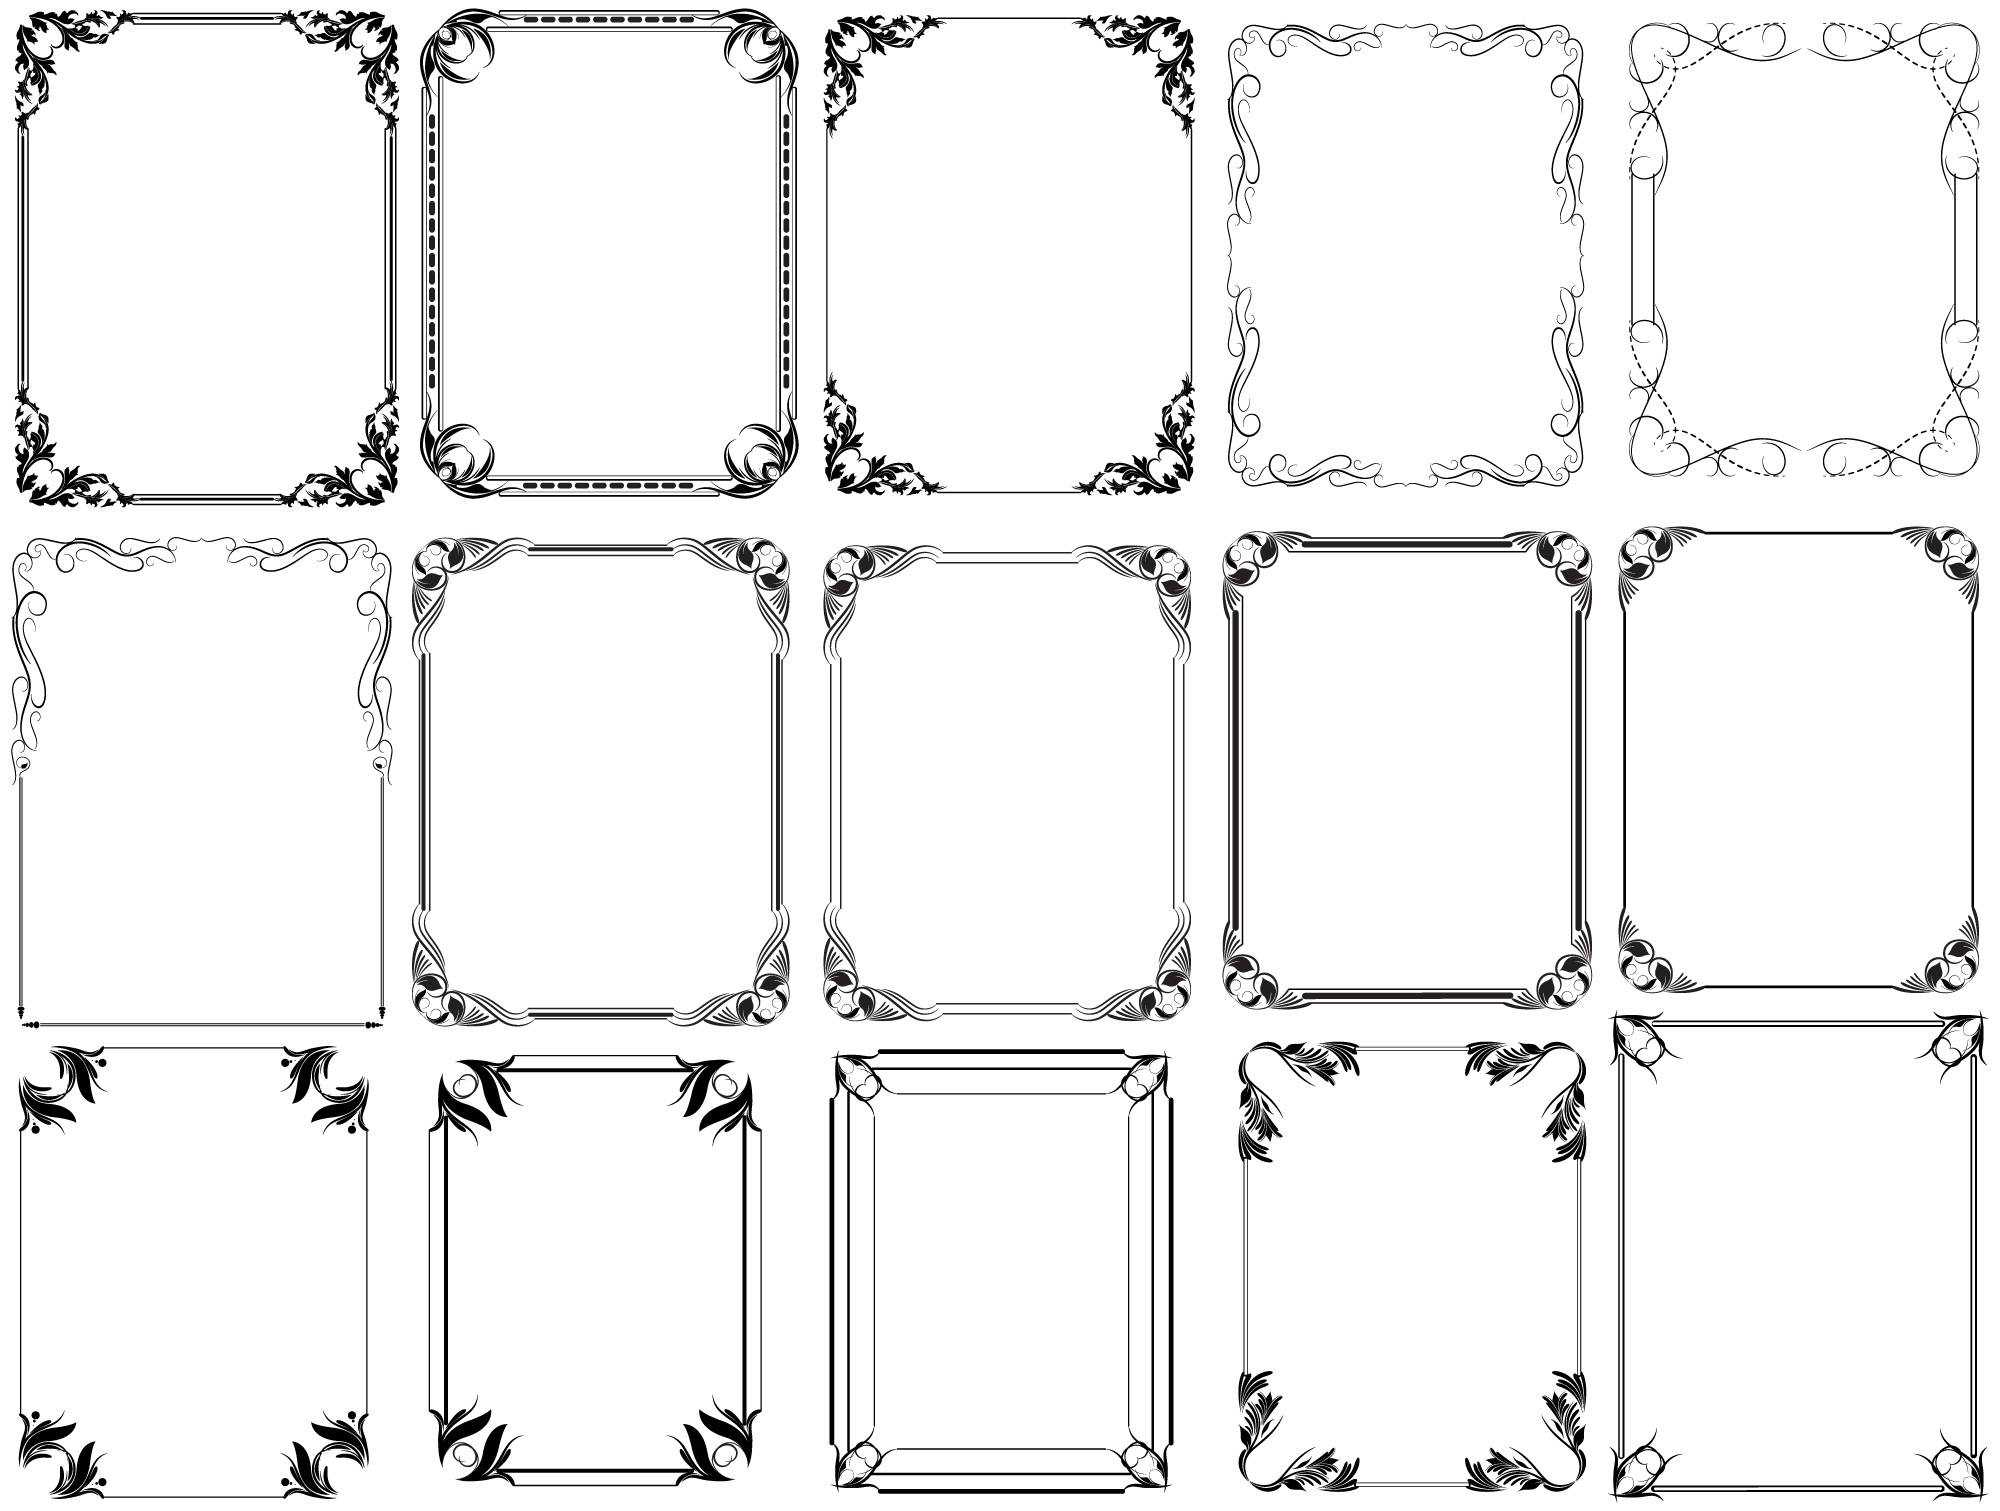 10 free photoshop frames png images free photoshop for Picture frame templates for photoshop